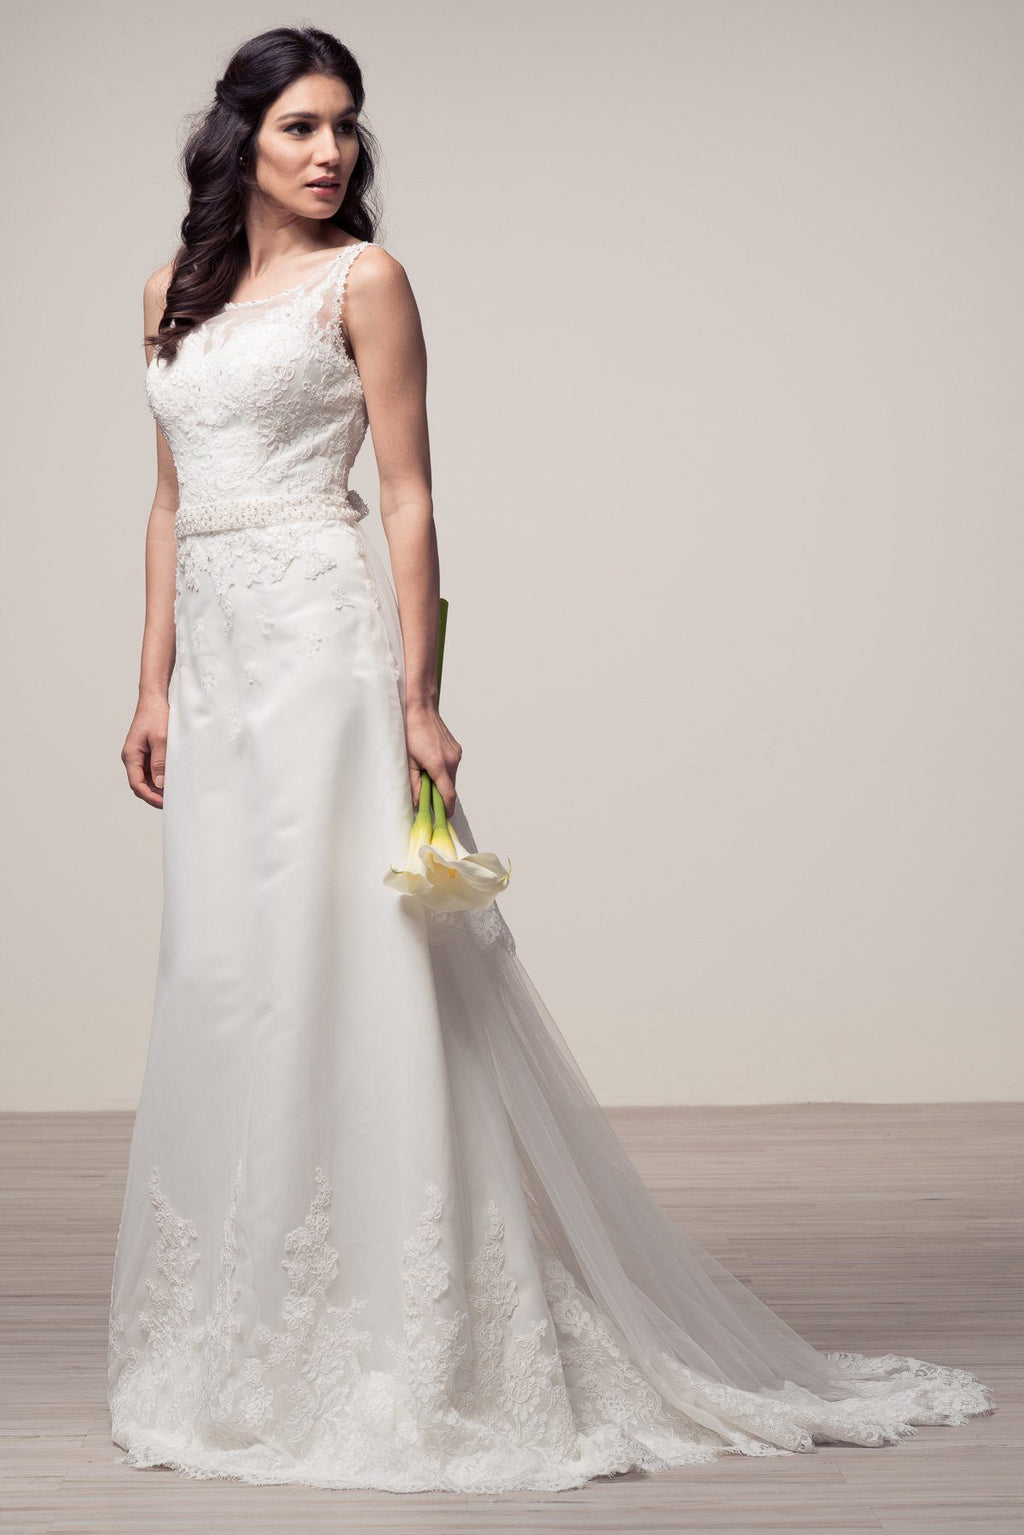 Elegant wedding dress 106-wyw2003